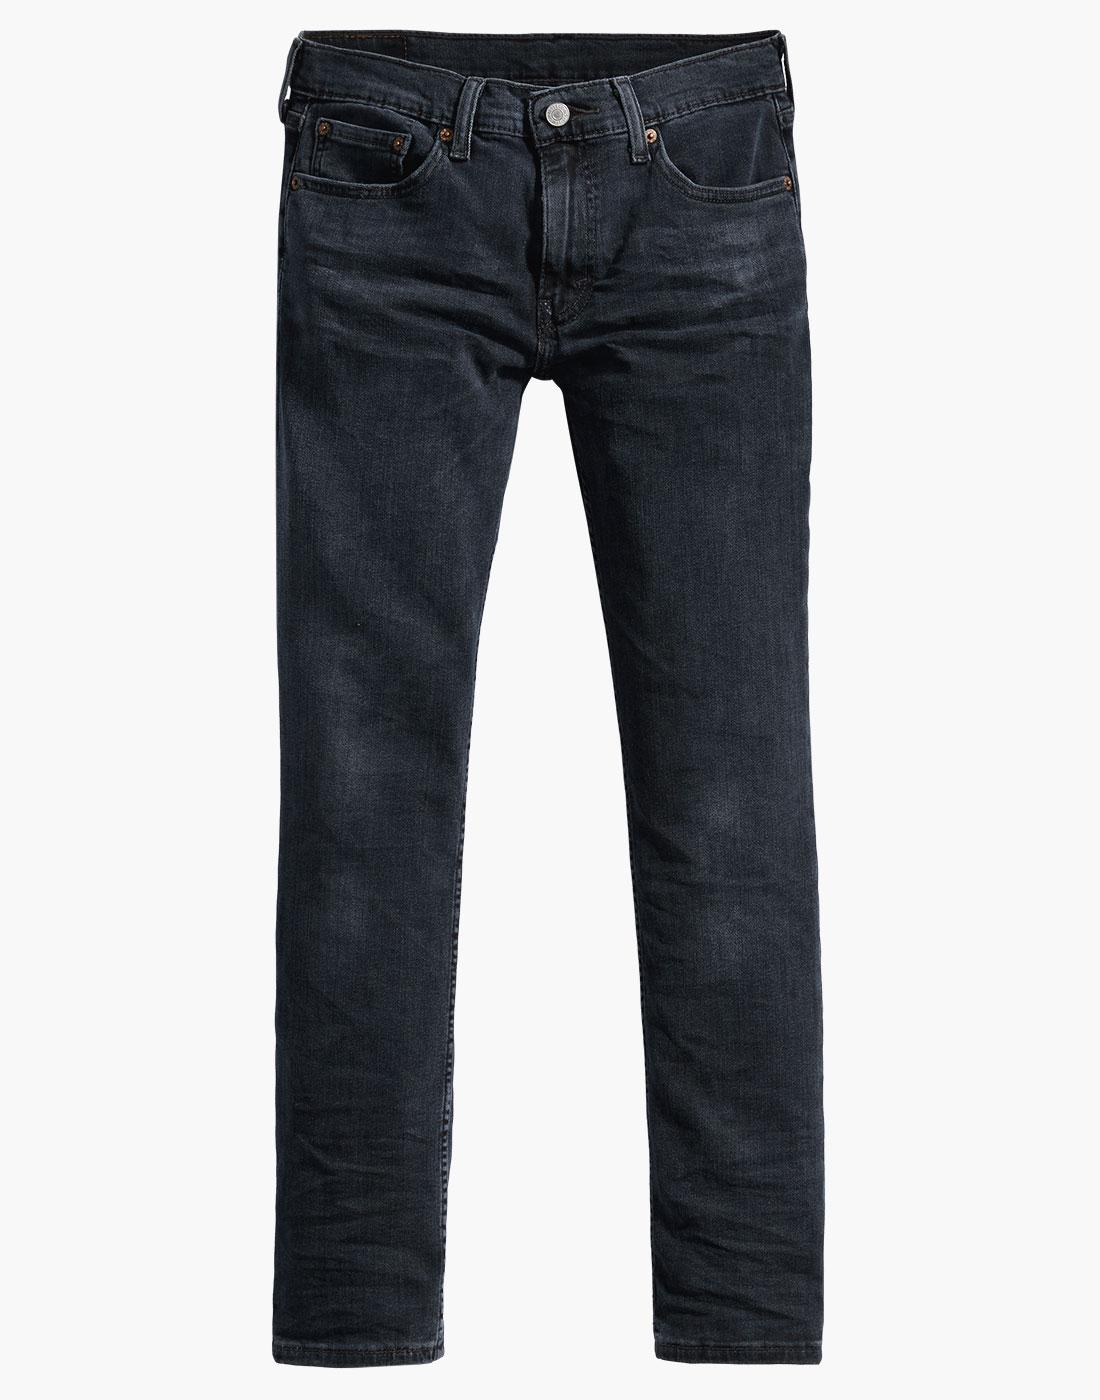 LEVI'S 511 Retro Mod Slim Denim Jeans HEADED SOUTH